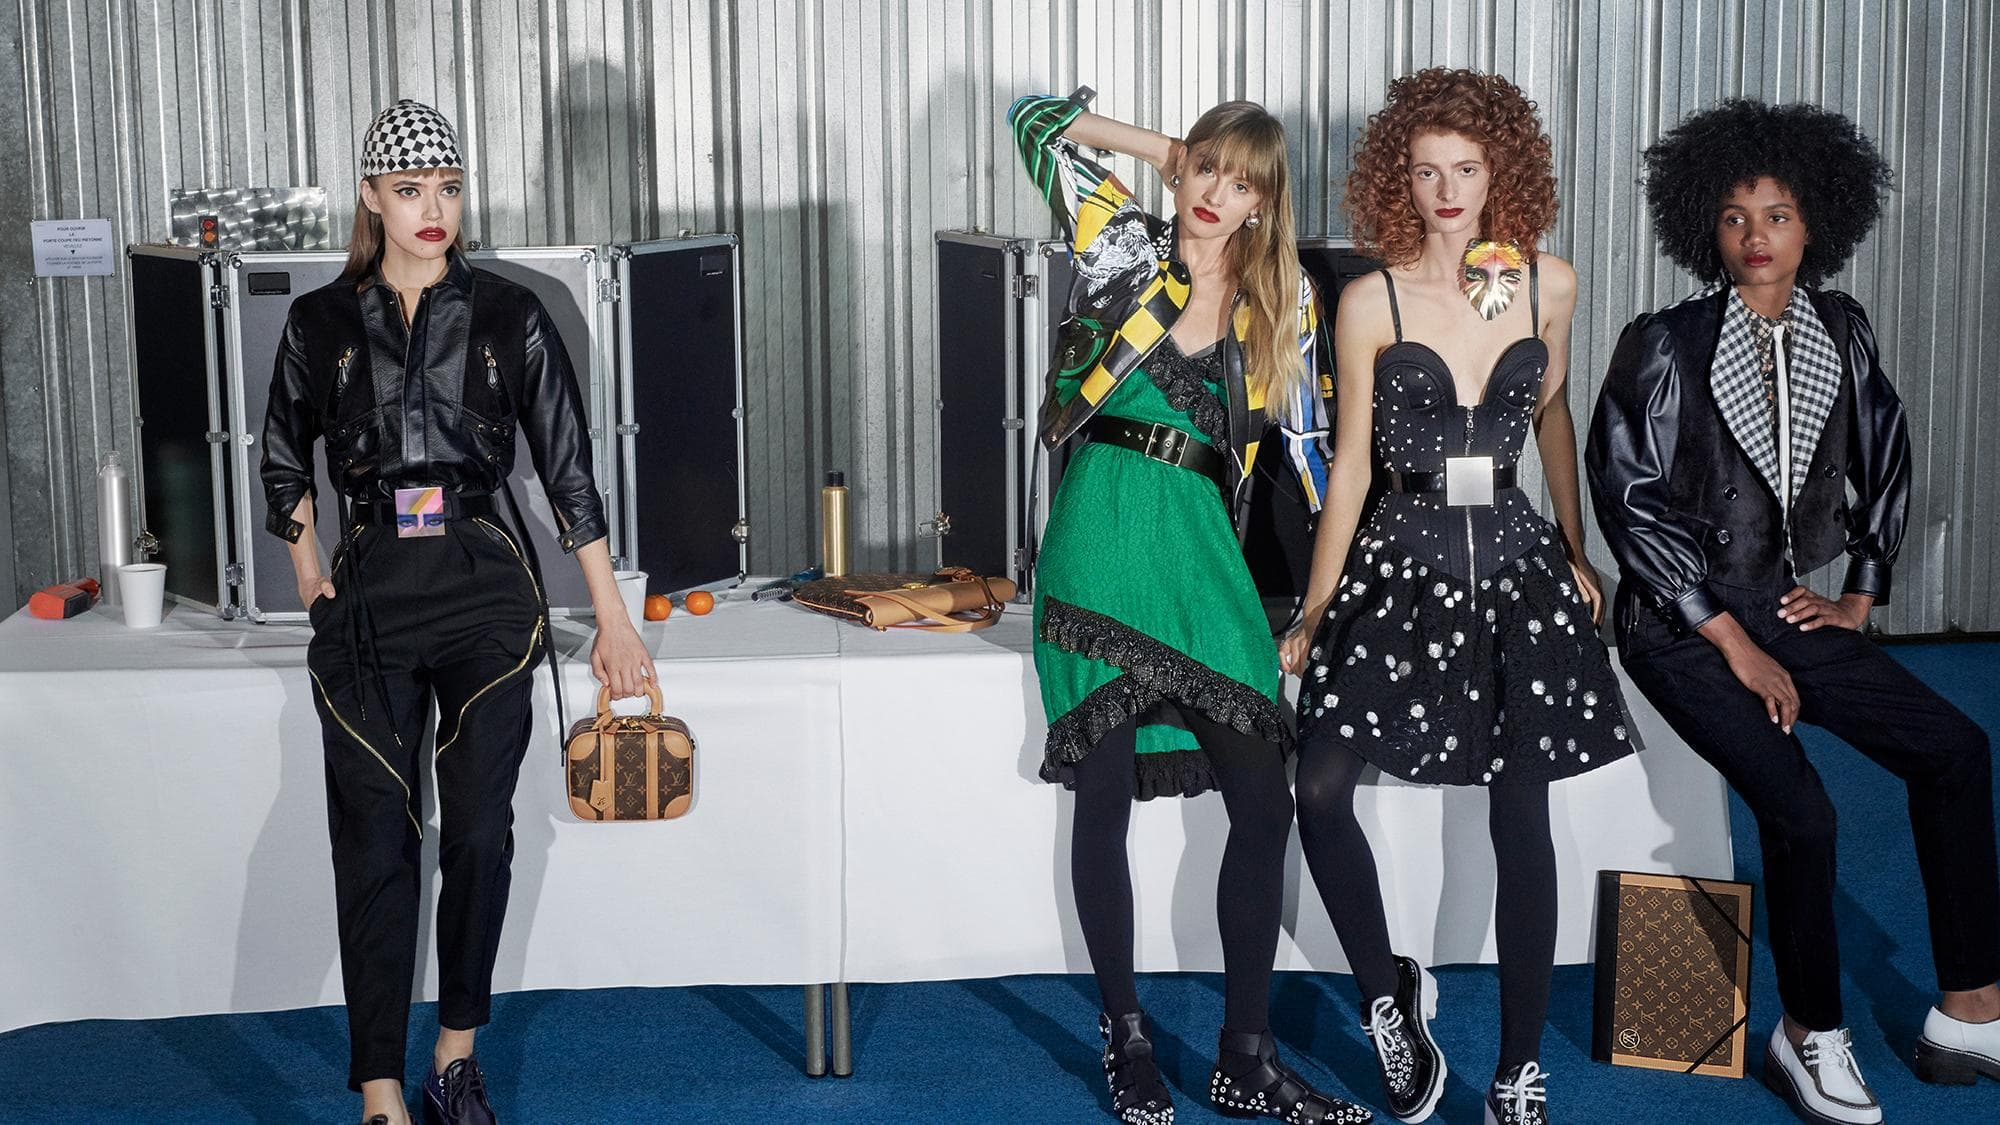 Louis Vuitton Fall 2019 Ad Campaign by Ronnie Cooke Newhouse